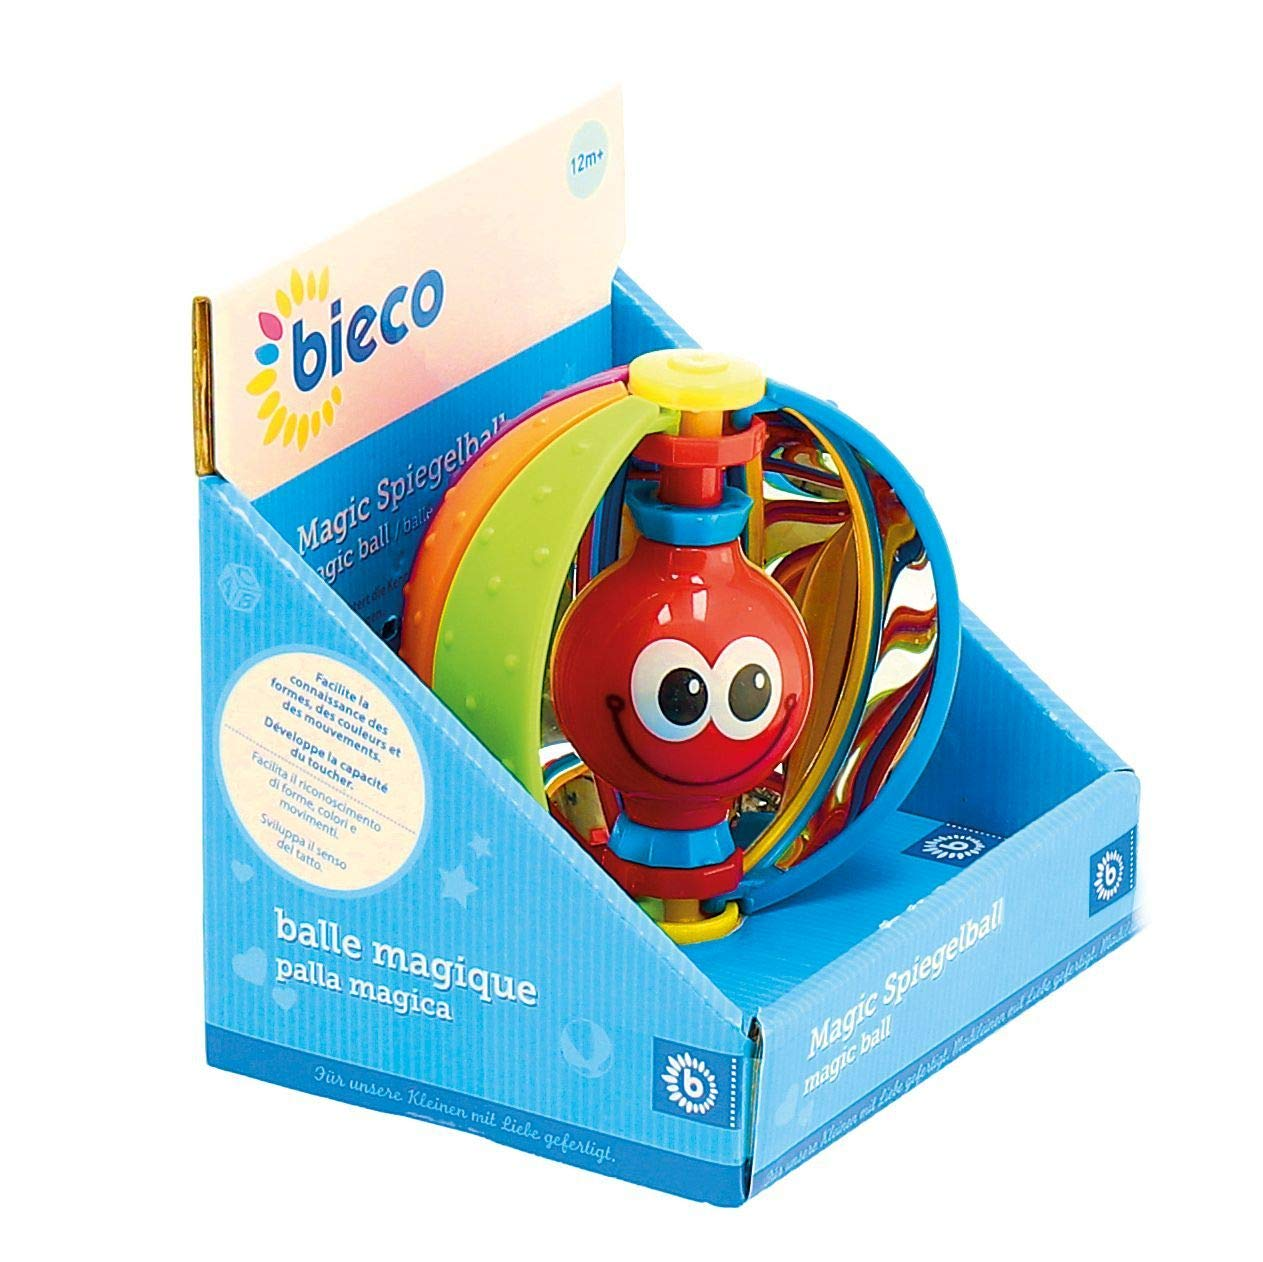 Activity Ball for Babies and Toddlers from 6m+ Bieco 41009053 Magic Mirror Ball Butterfly with Integrated Mirrors for Playing and Discovering Senses Multi-Coloured